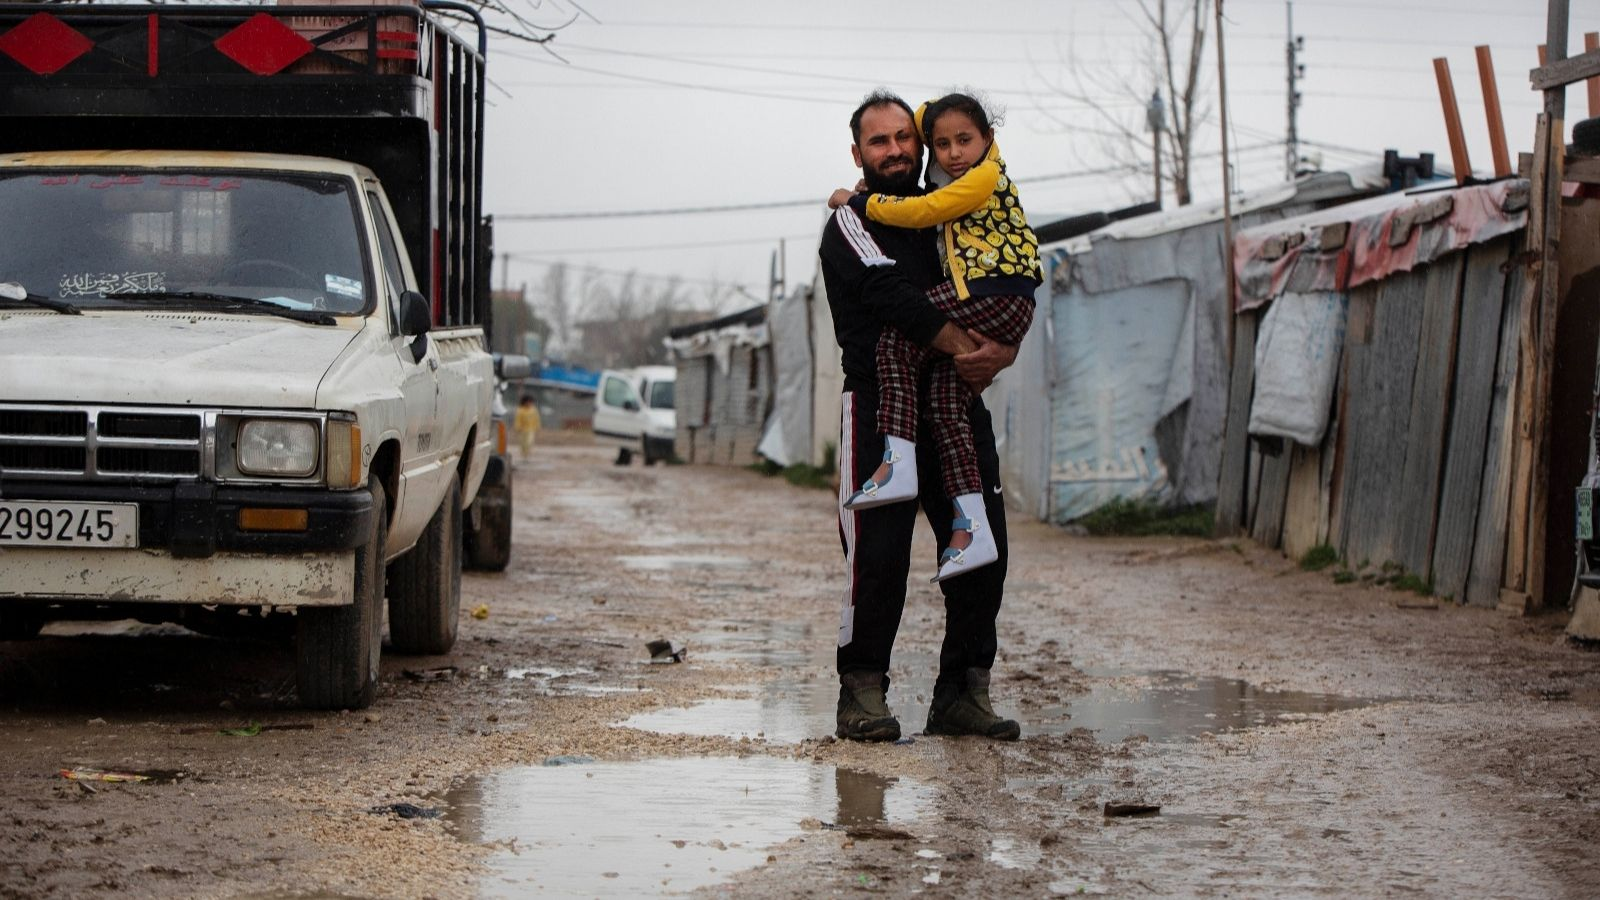 World Refugee Day | More and more people are forcibly displaced from home